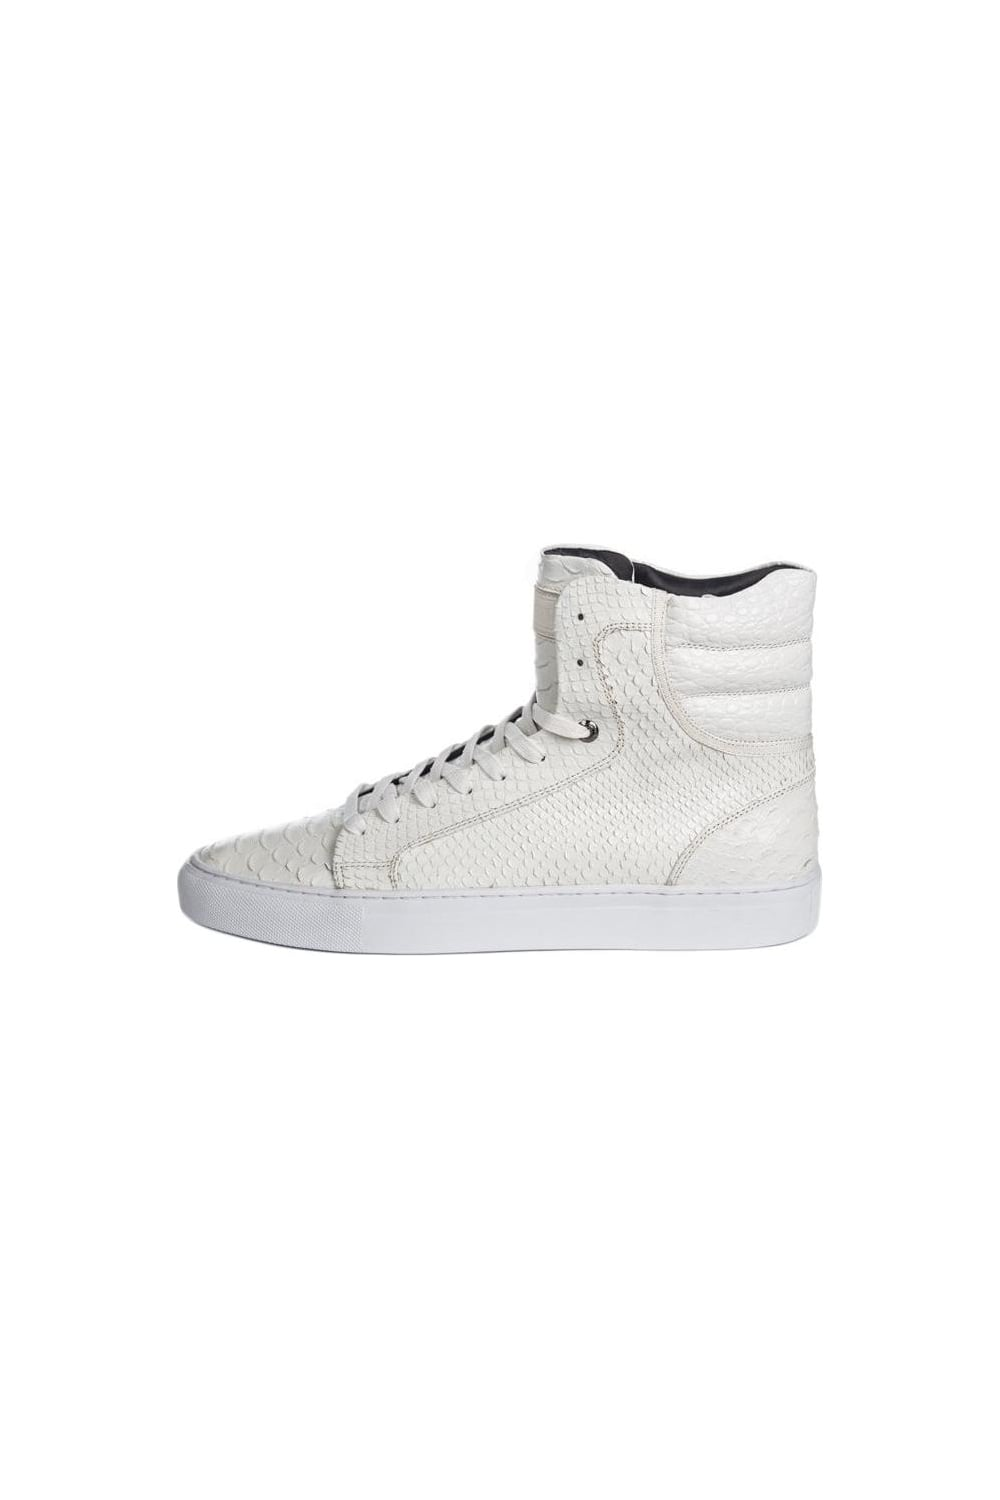 78154a37c8ac Android Homme Propulsion 1.8 Python Trainers White